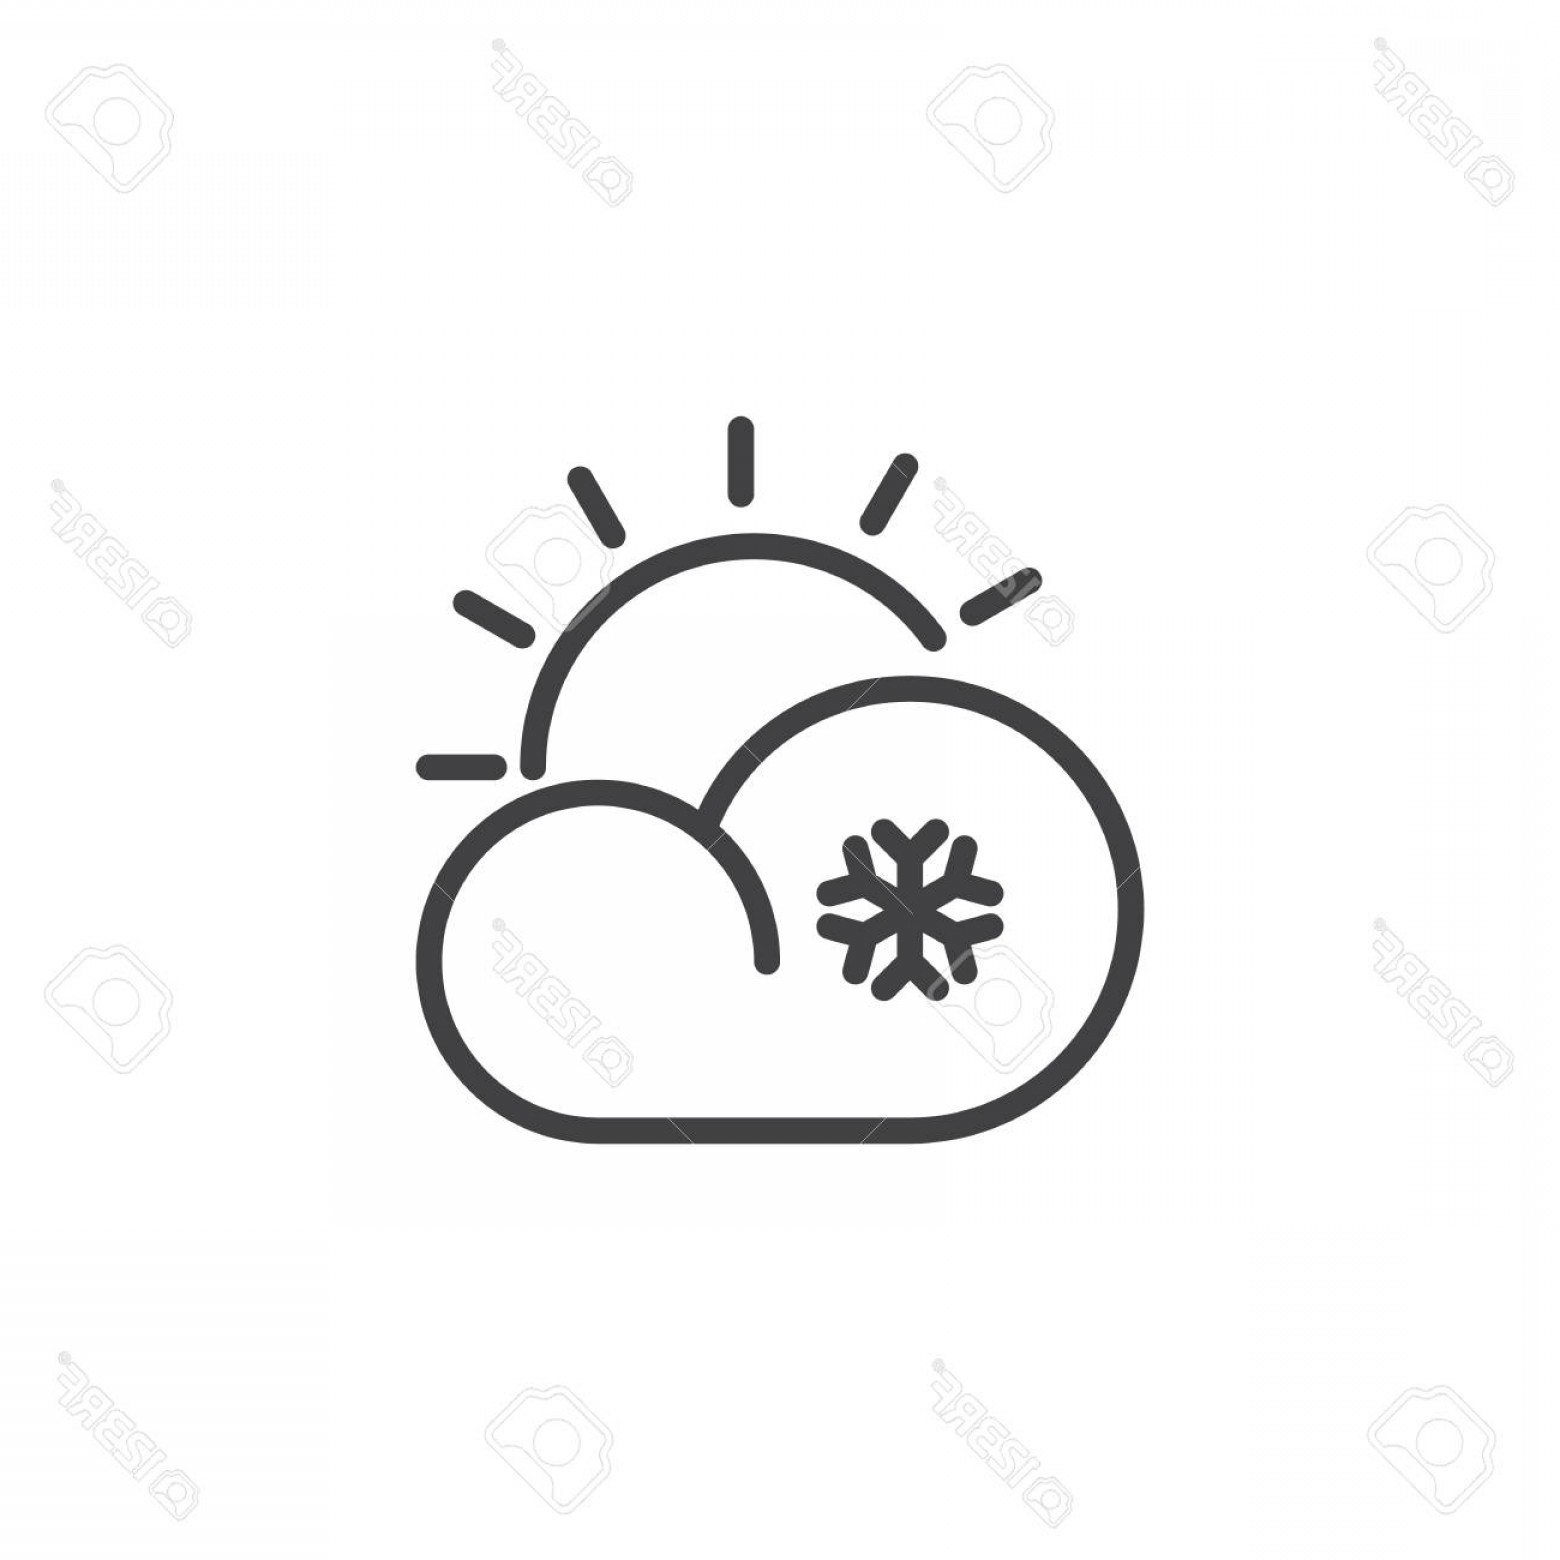 Cloud Outline Vector Black And White: Photostock Vector Cloud Snow Sun Line Icon Outline Vector Sign Linear Style Pictogram Isolated On White Snowflake And